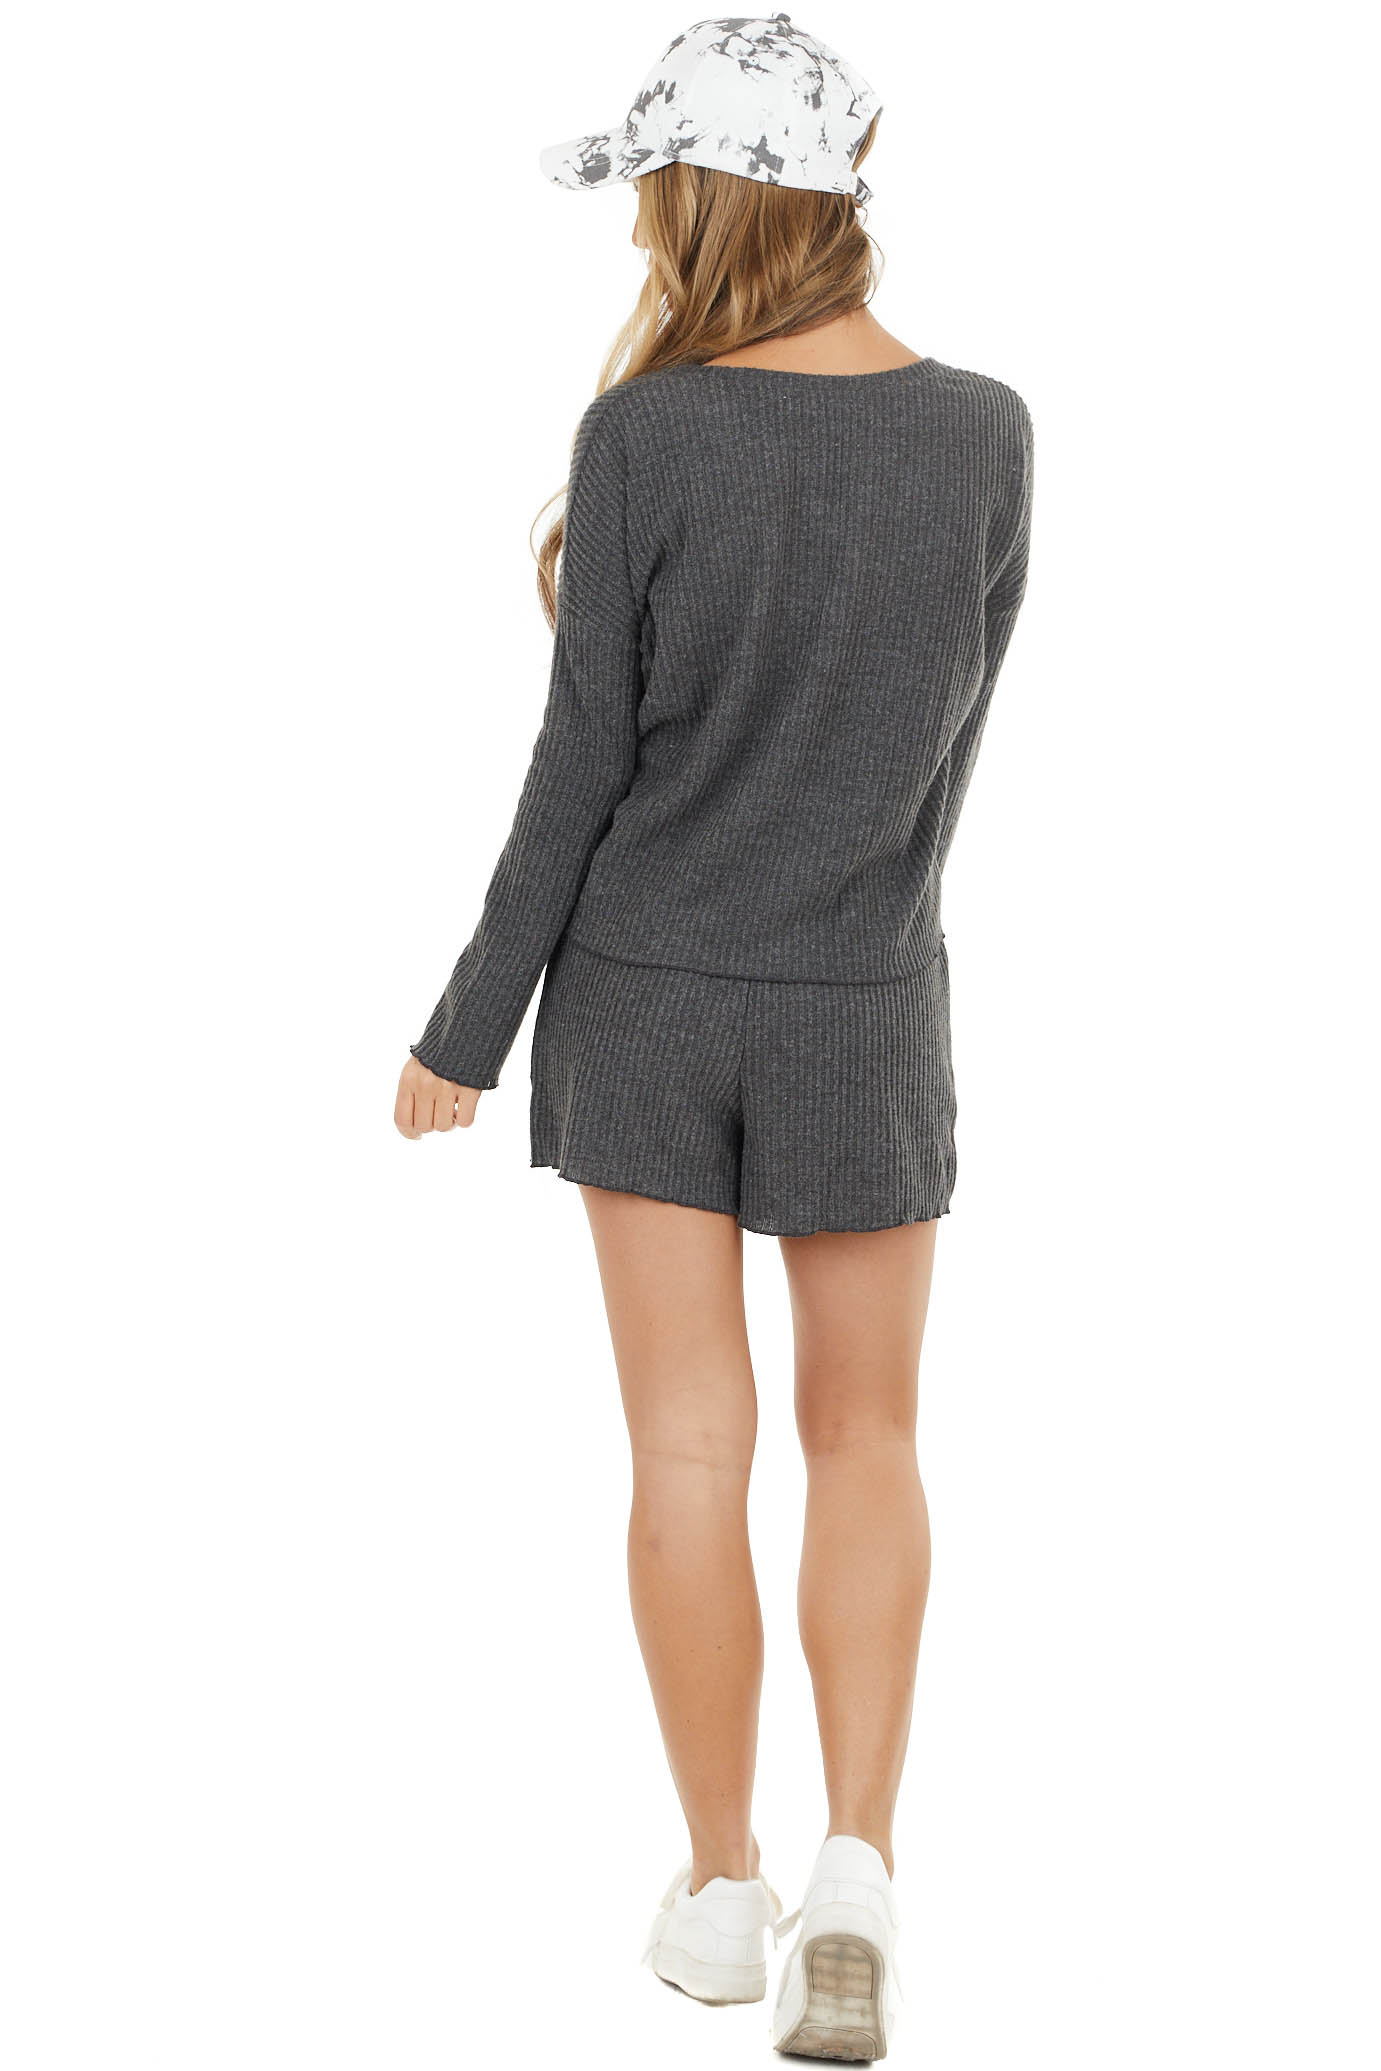 Charcoal Grey Rib Knit Long Sleeve Top with Pocket